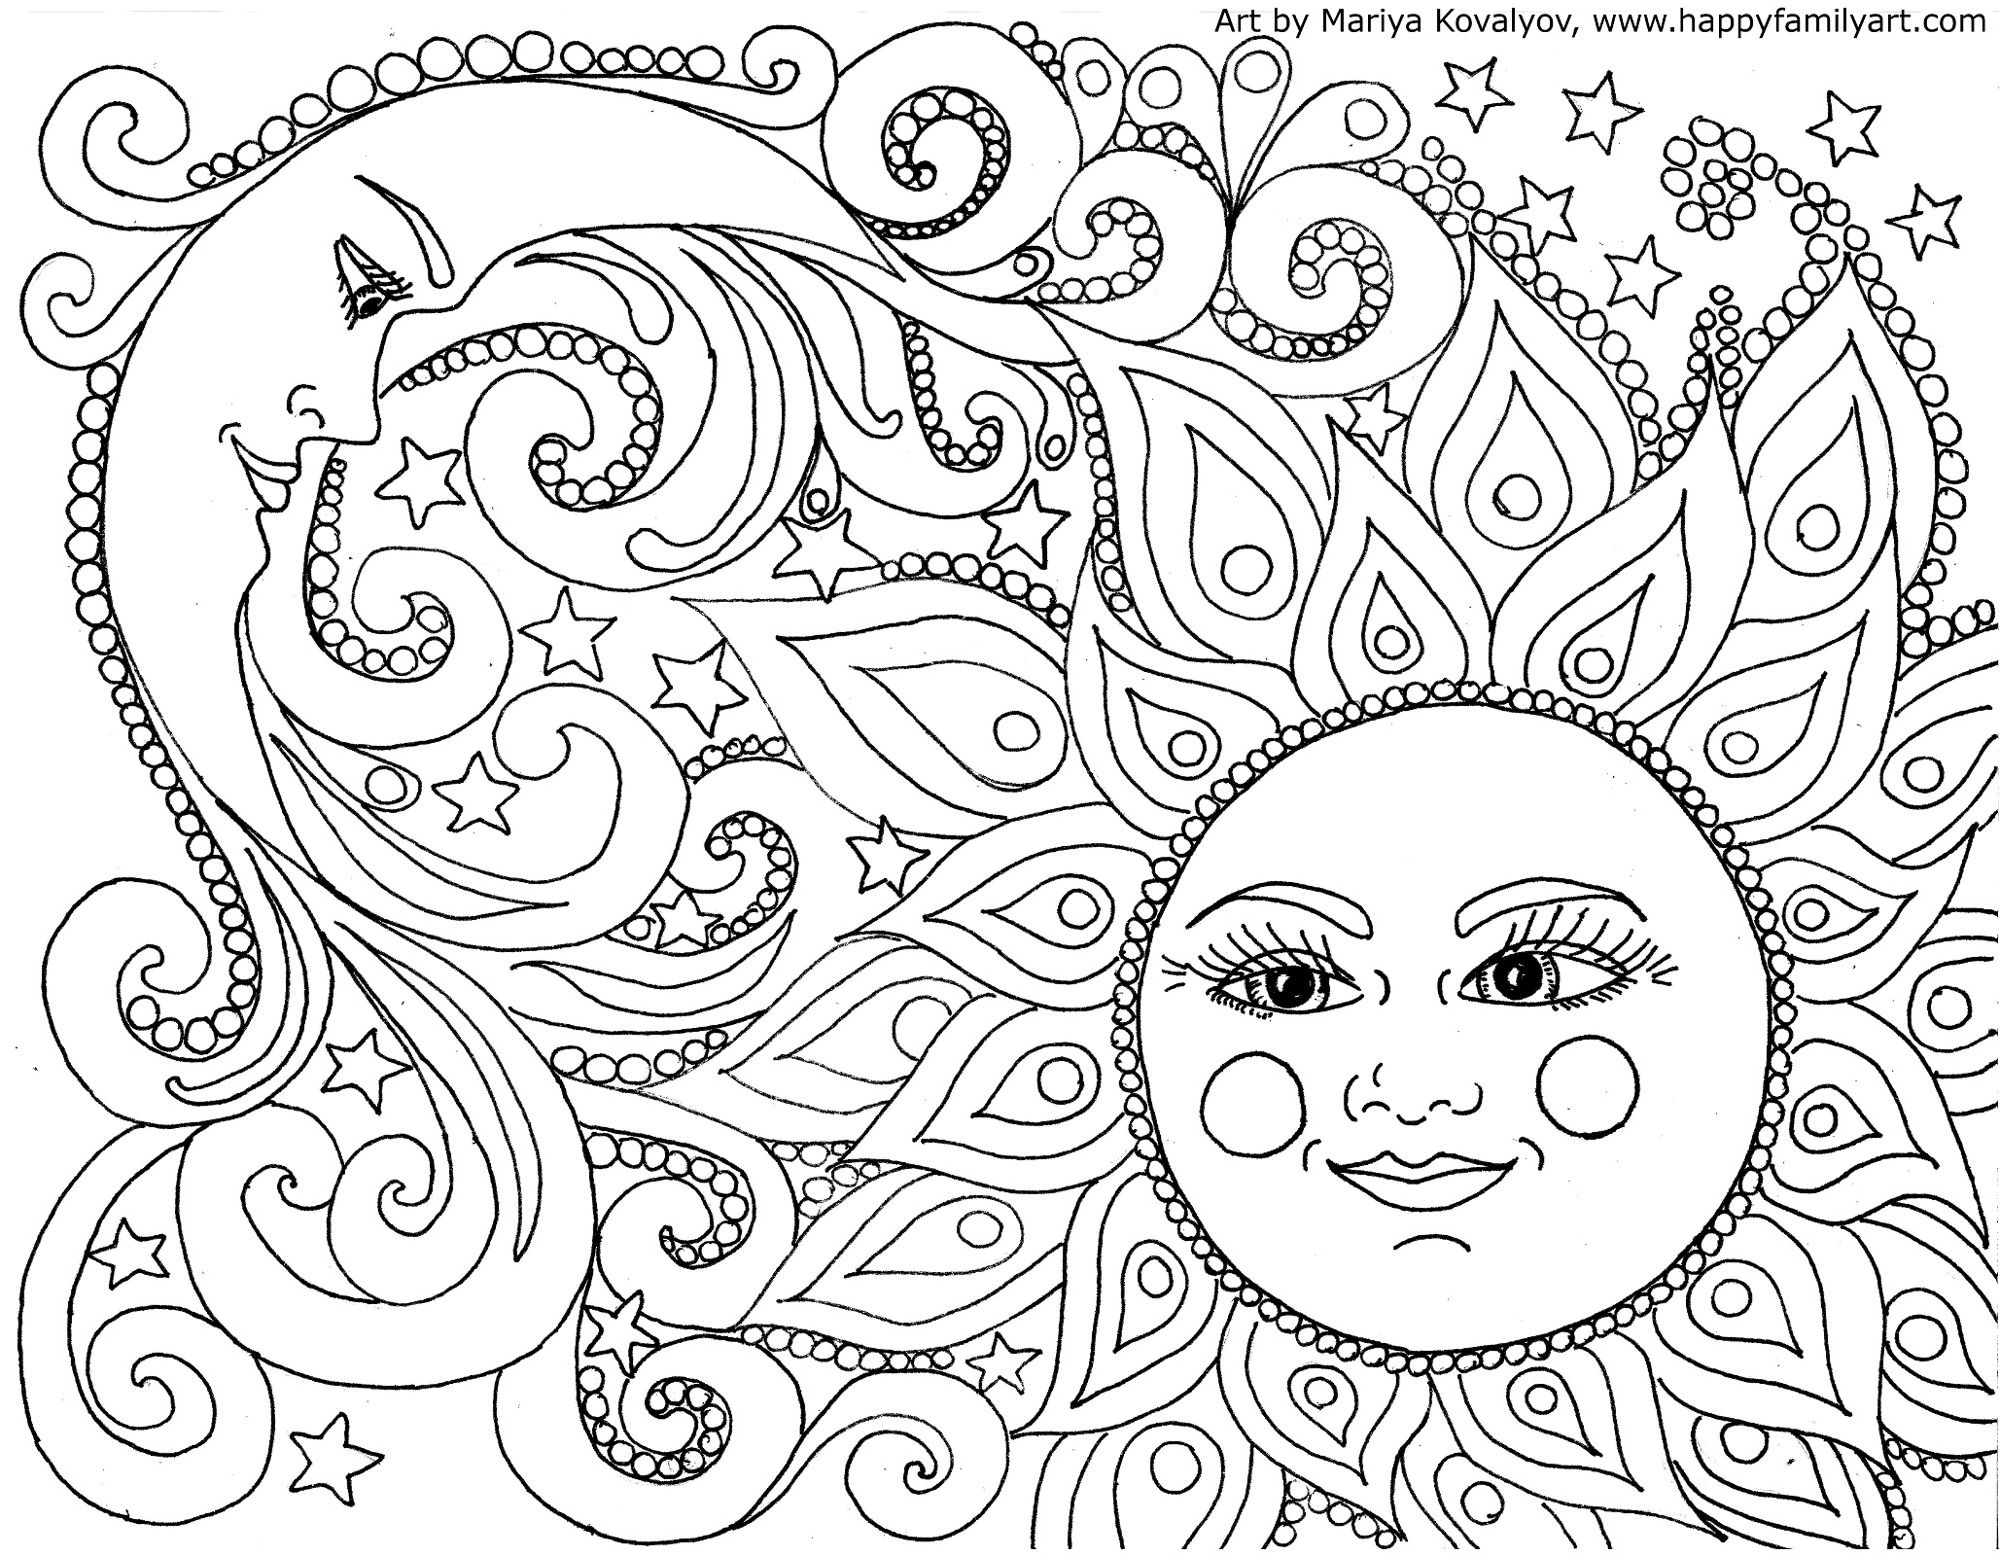 i made many great fun and original coloring pages color your heart out - Fun Colouring Sheets